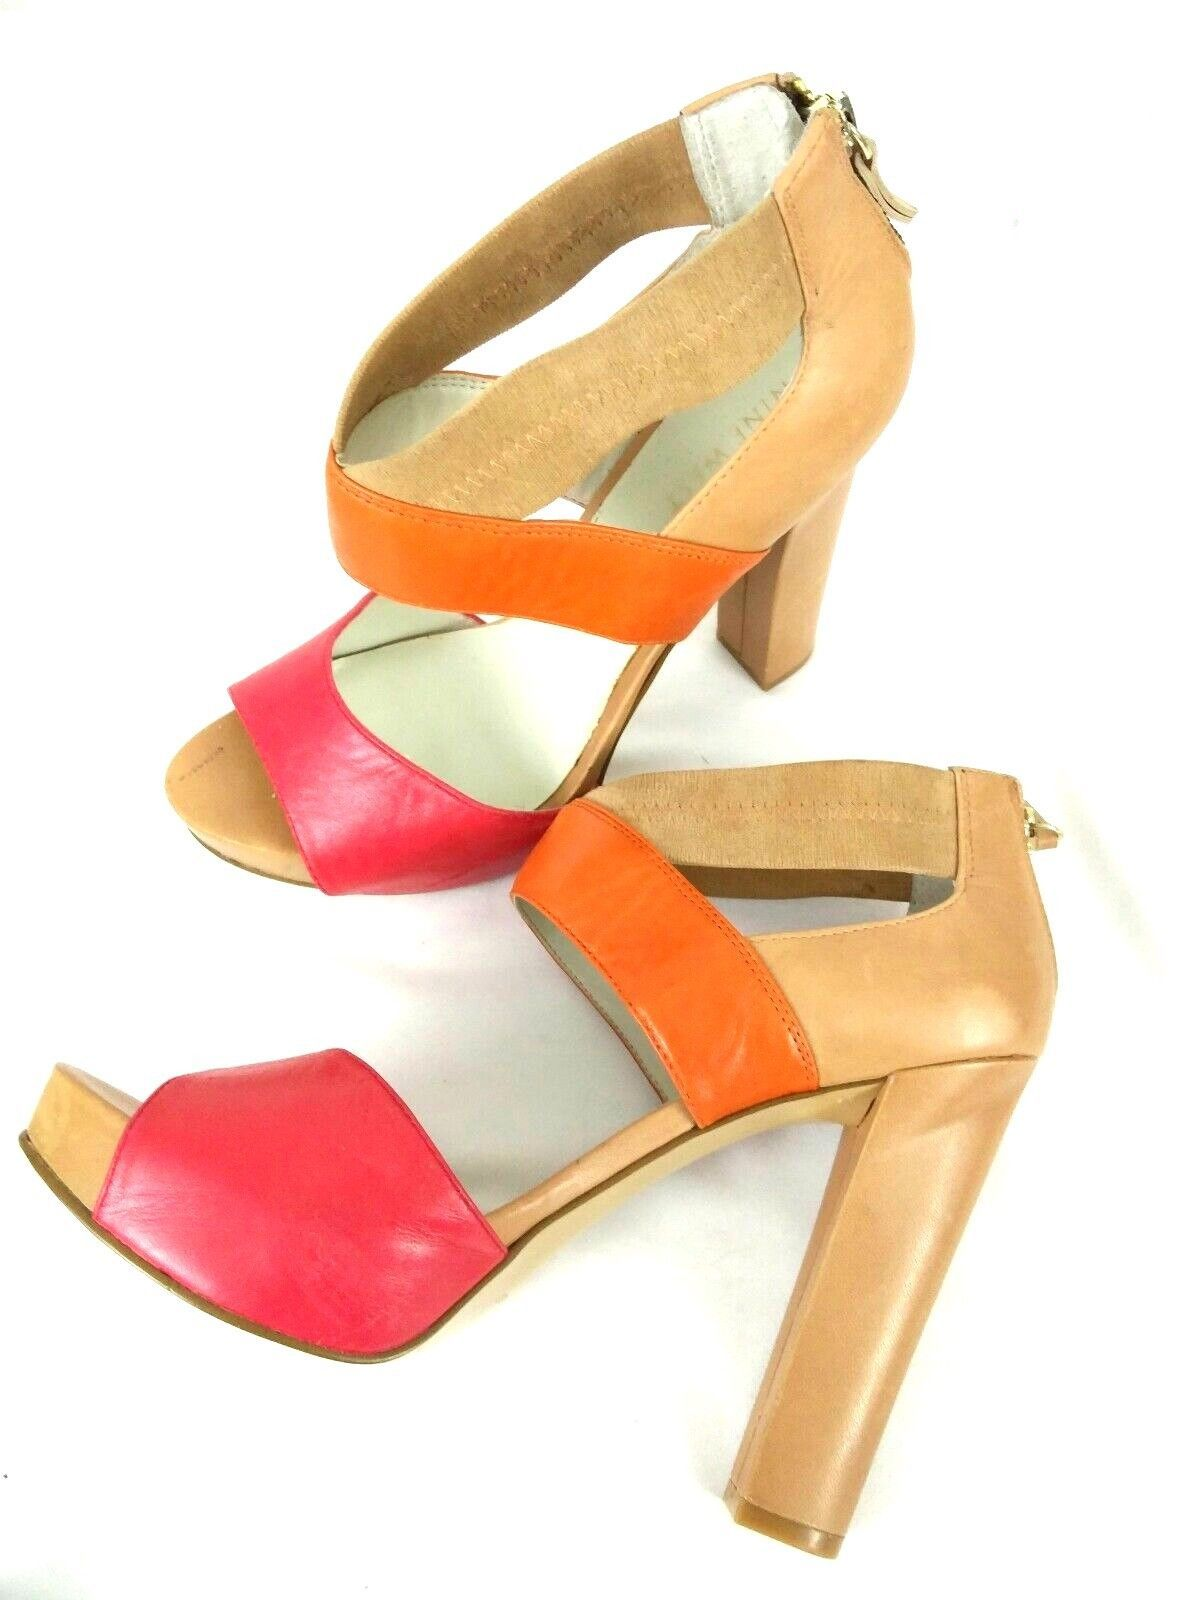 Nine West Stylin Women 8M Leather Multi Color Open Toe Platform Zipper Back Heel